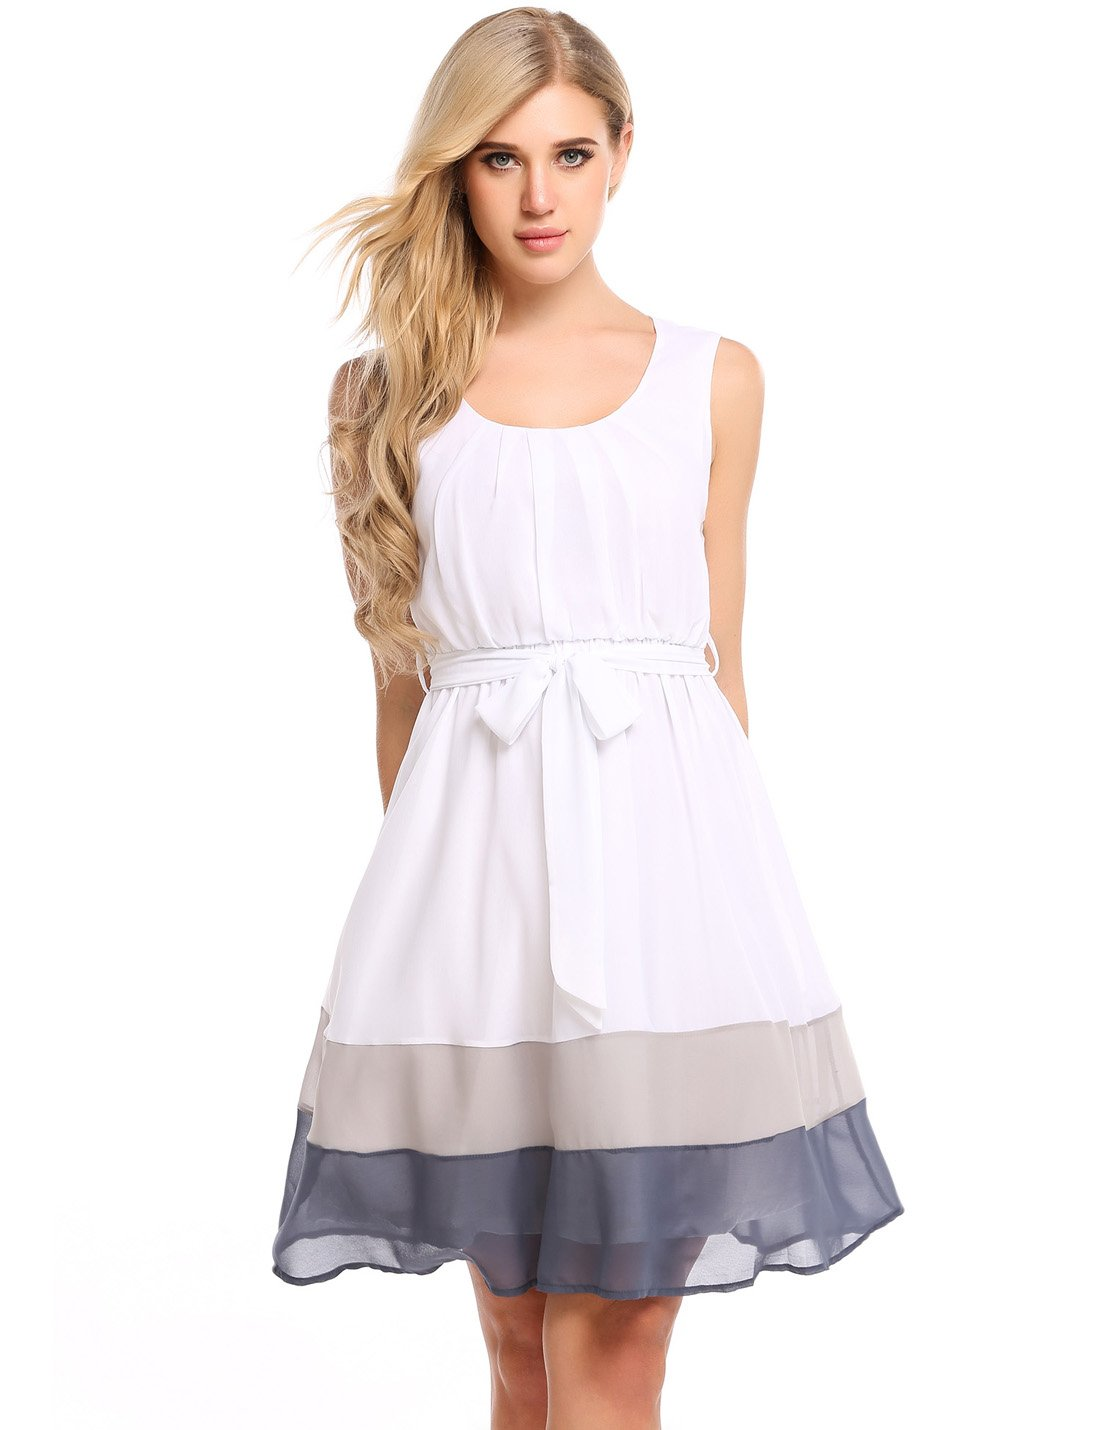 Zeagoo Womens Sweet Sleeveless Fit and Flare Colorblock Casual Chiffon Dress With Belt, Grey, X-Small